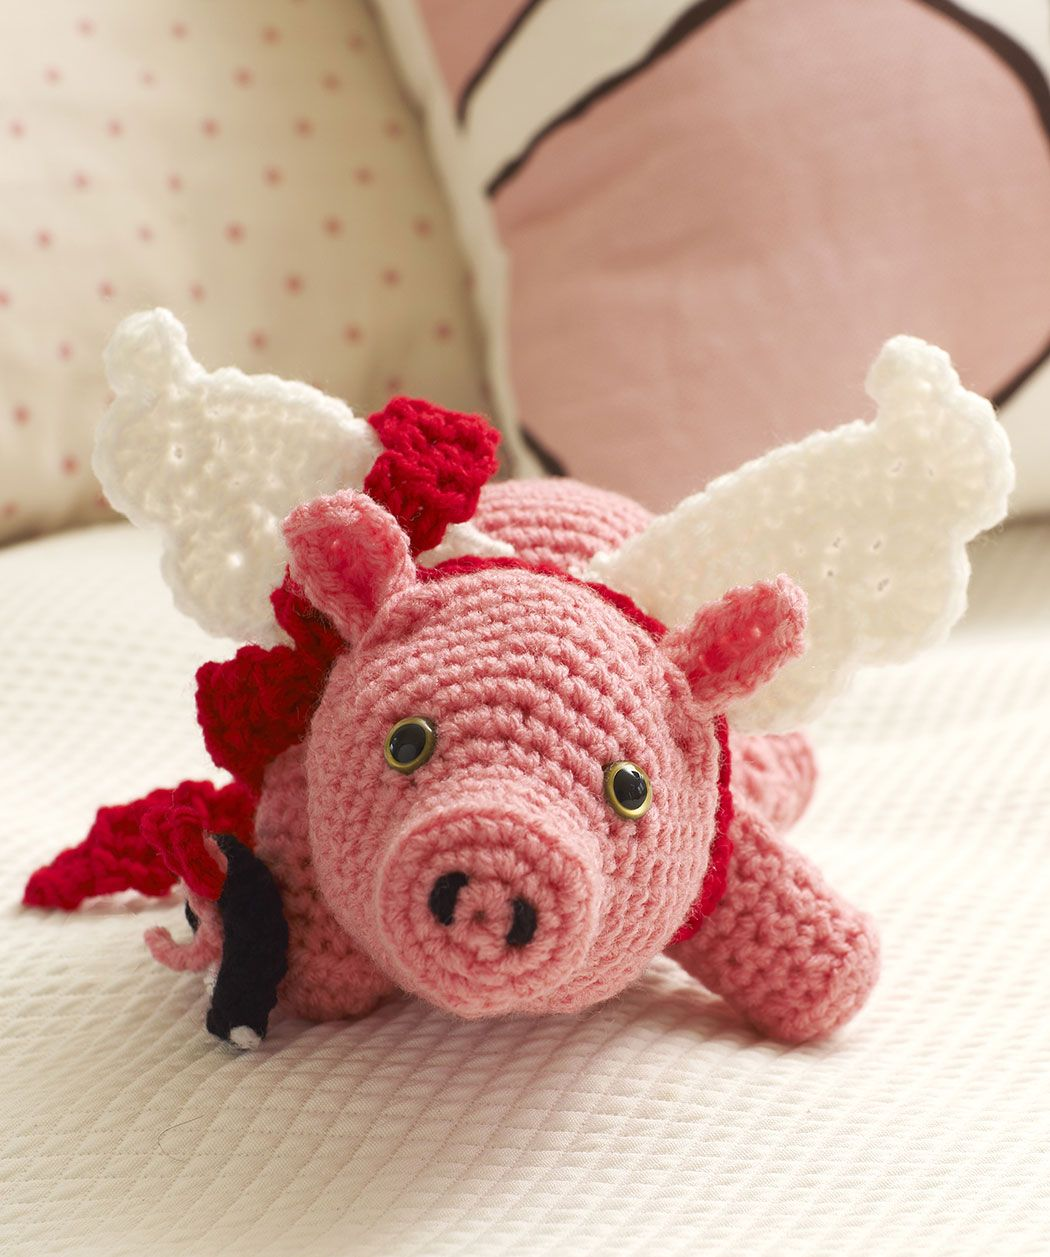 Cu Pig Crochet Pattern From Red Heart Omg A Flying Pig